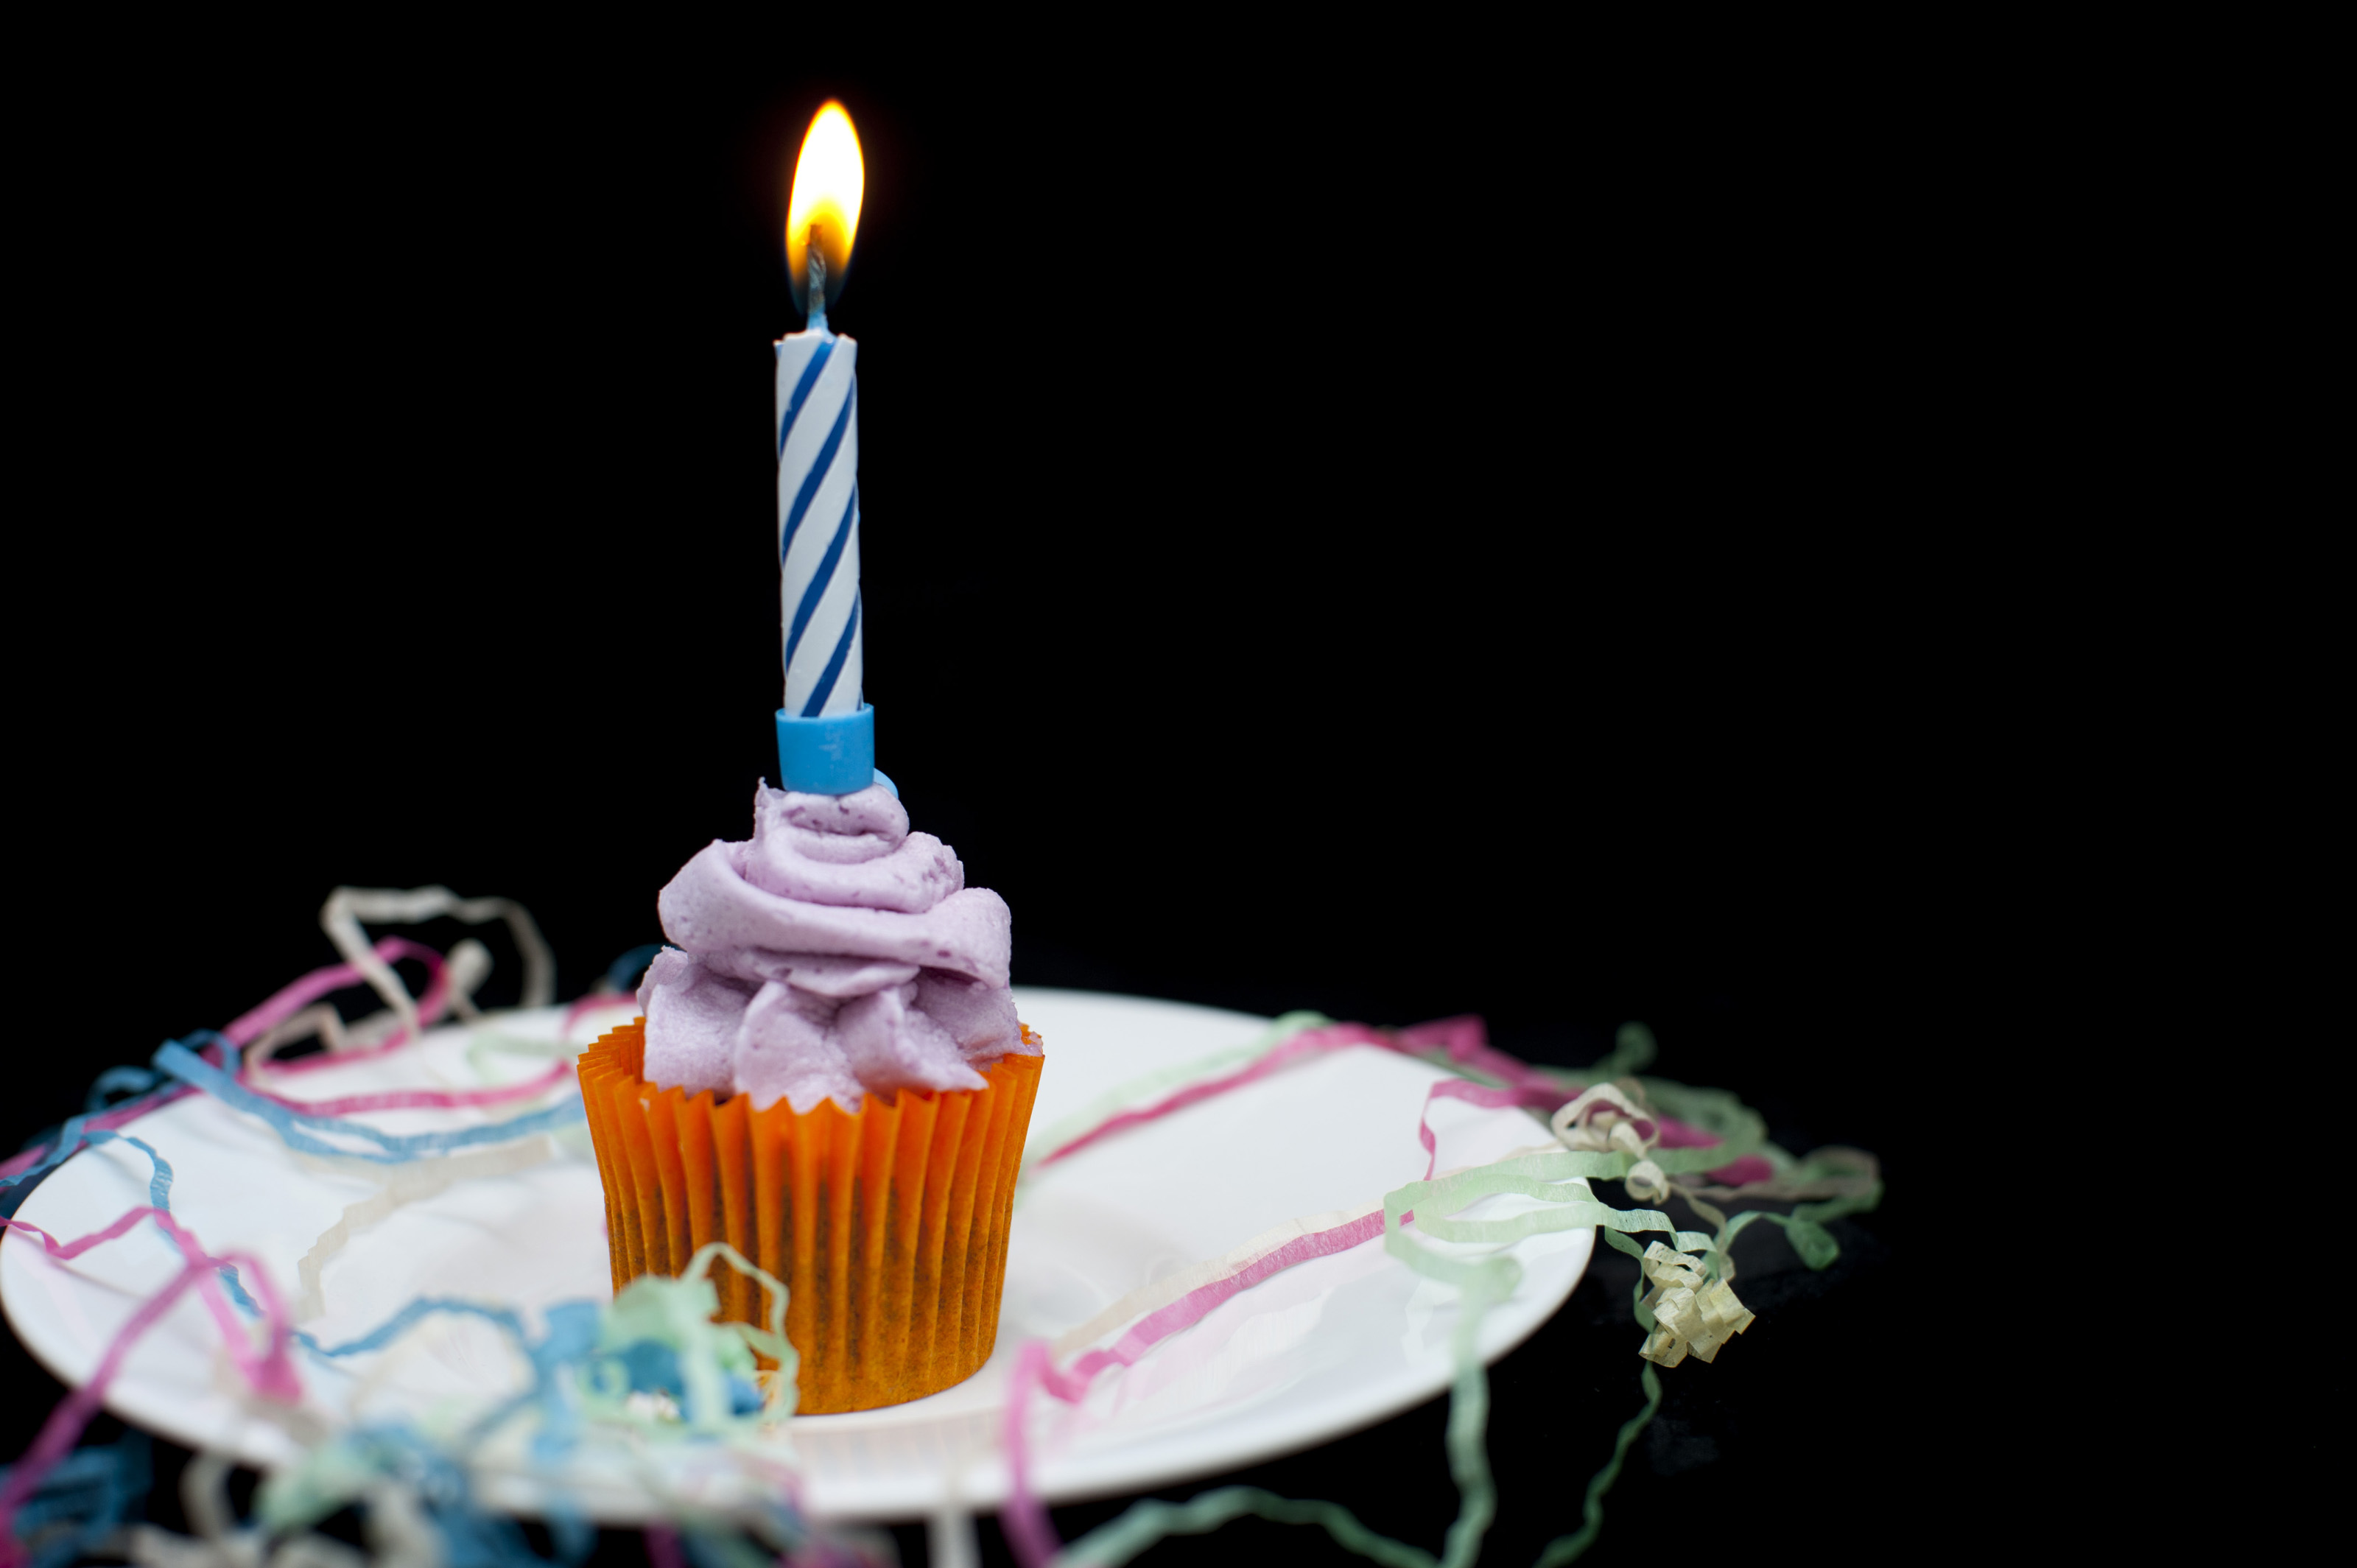 free stock photo 8008 party candle | freeimageslive